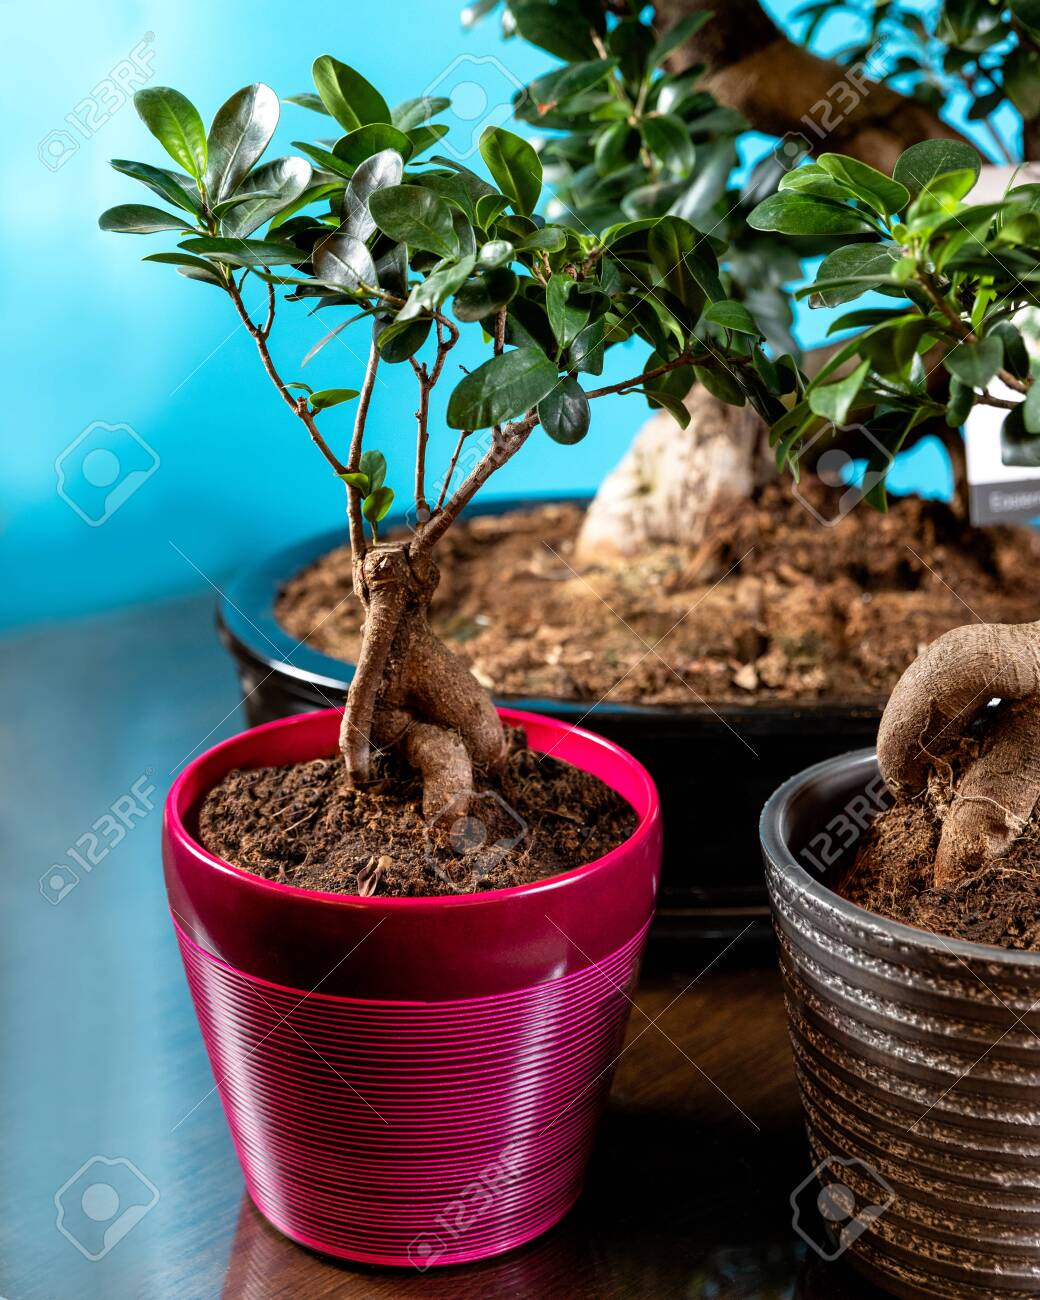 Beautfiul Small Serissa Bonsai Tree In Purple Pot Stock Photo Picture And Royalty Free Image Image 151144588